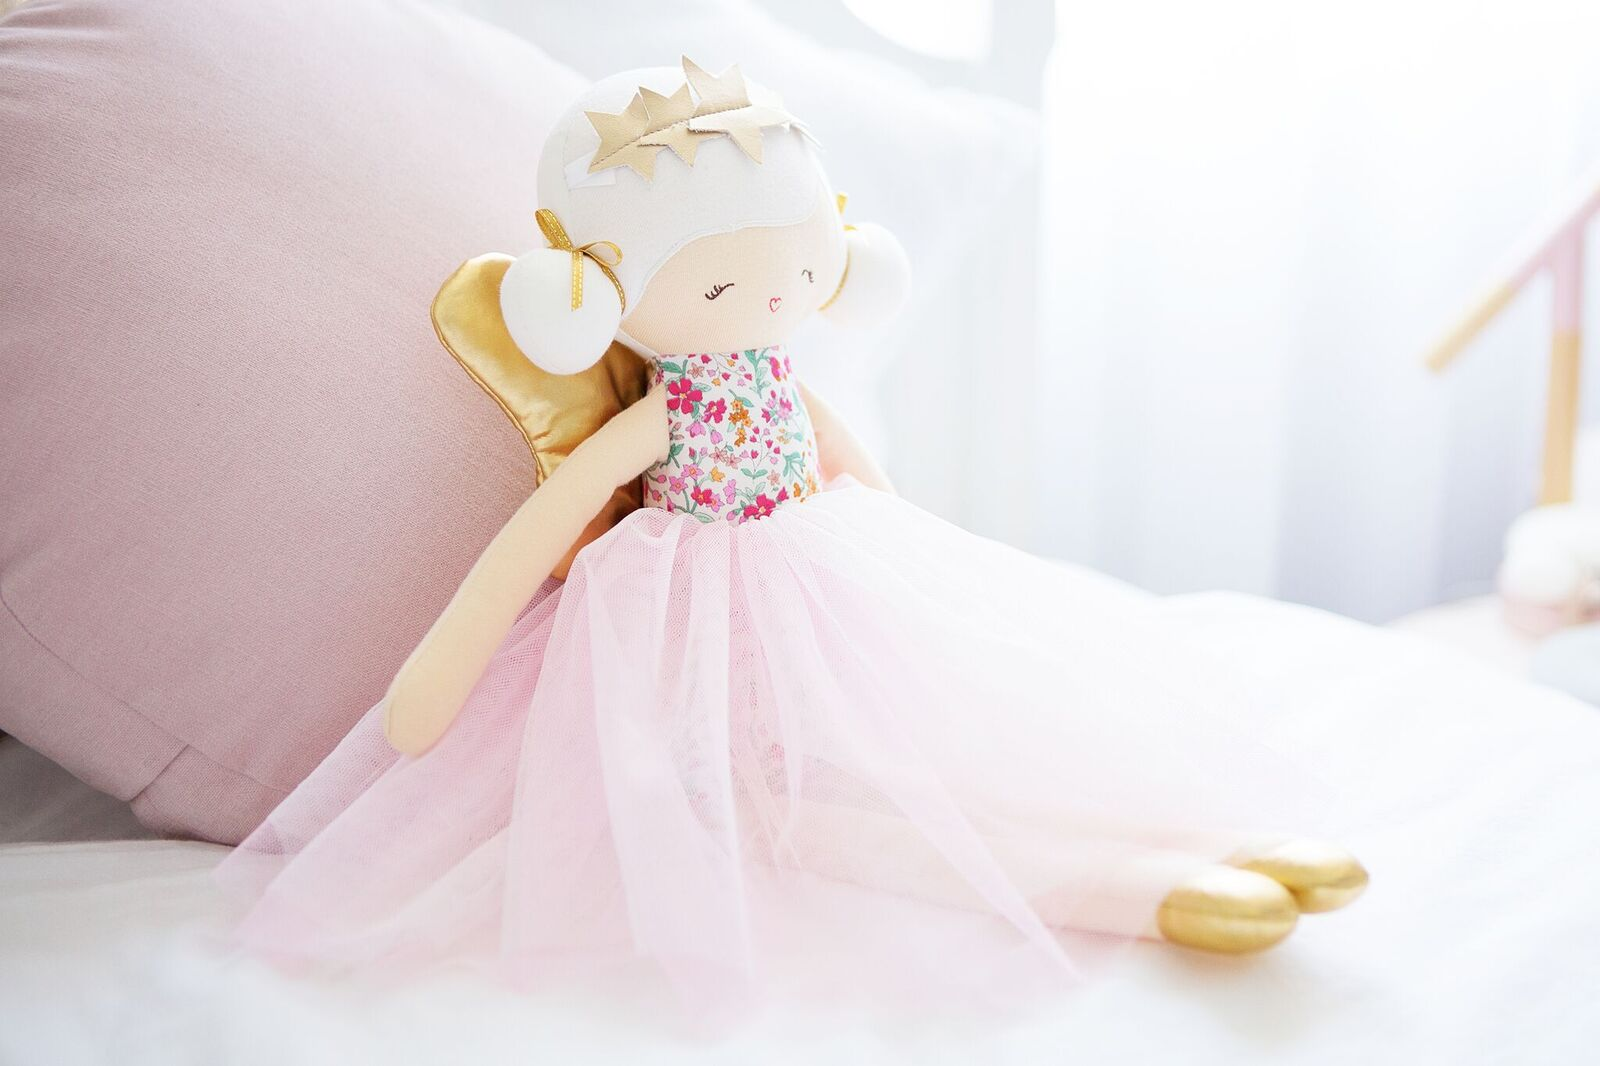 Alimrose Willow Fairy Doll Lifestyle 1